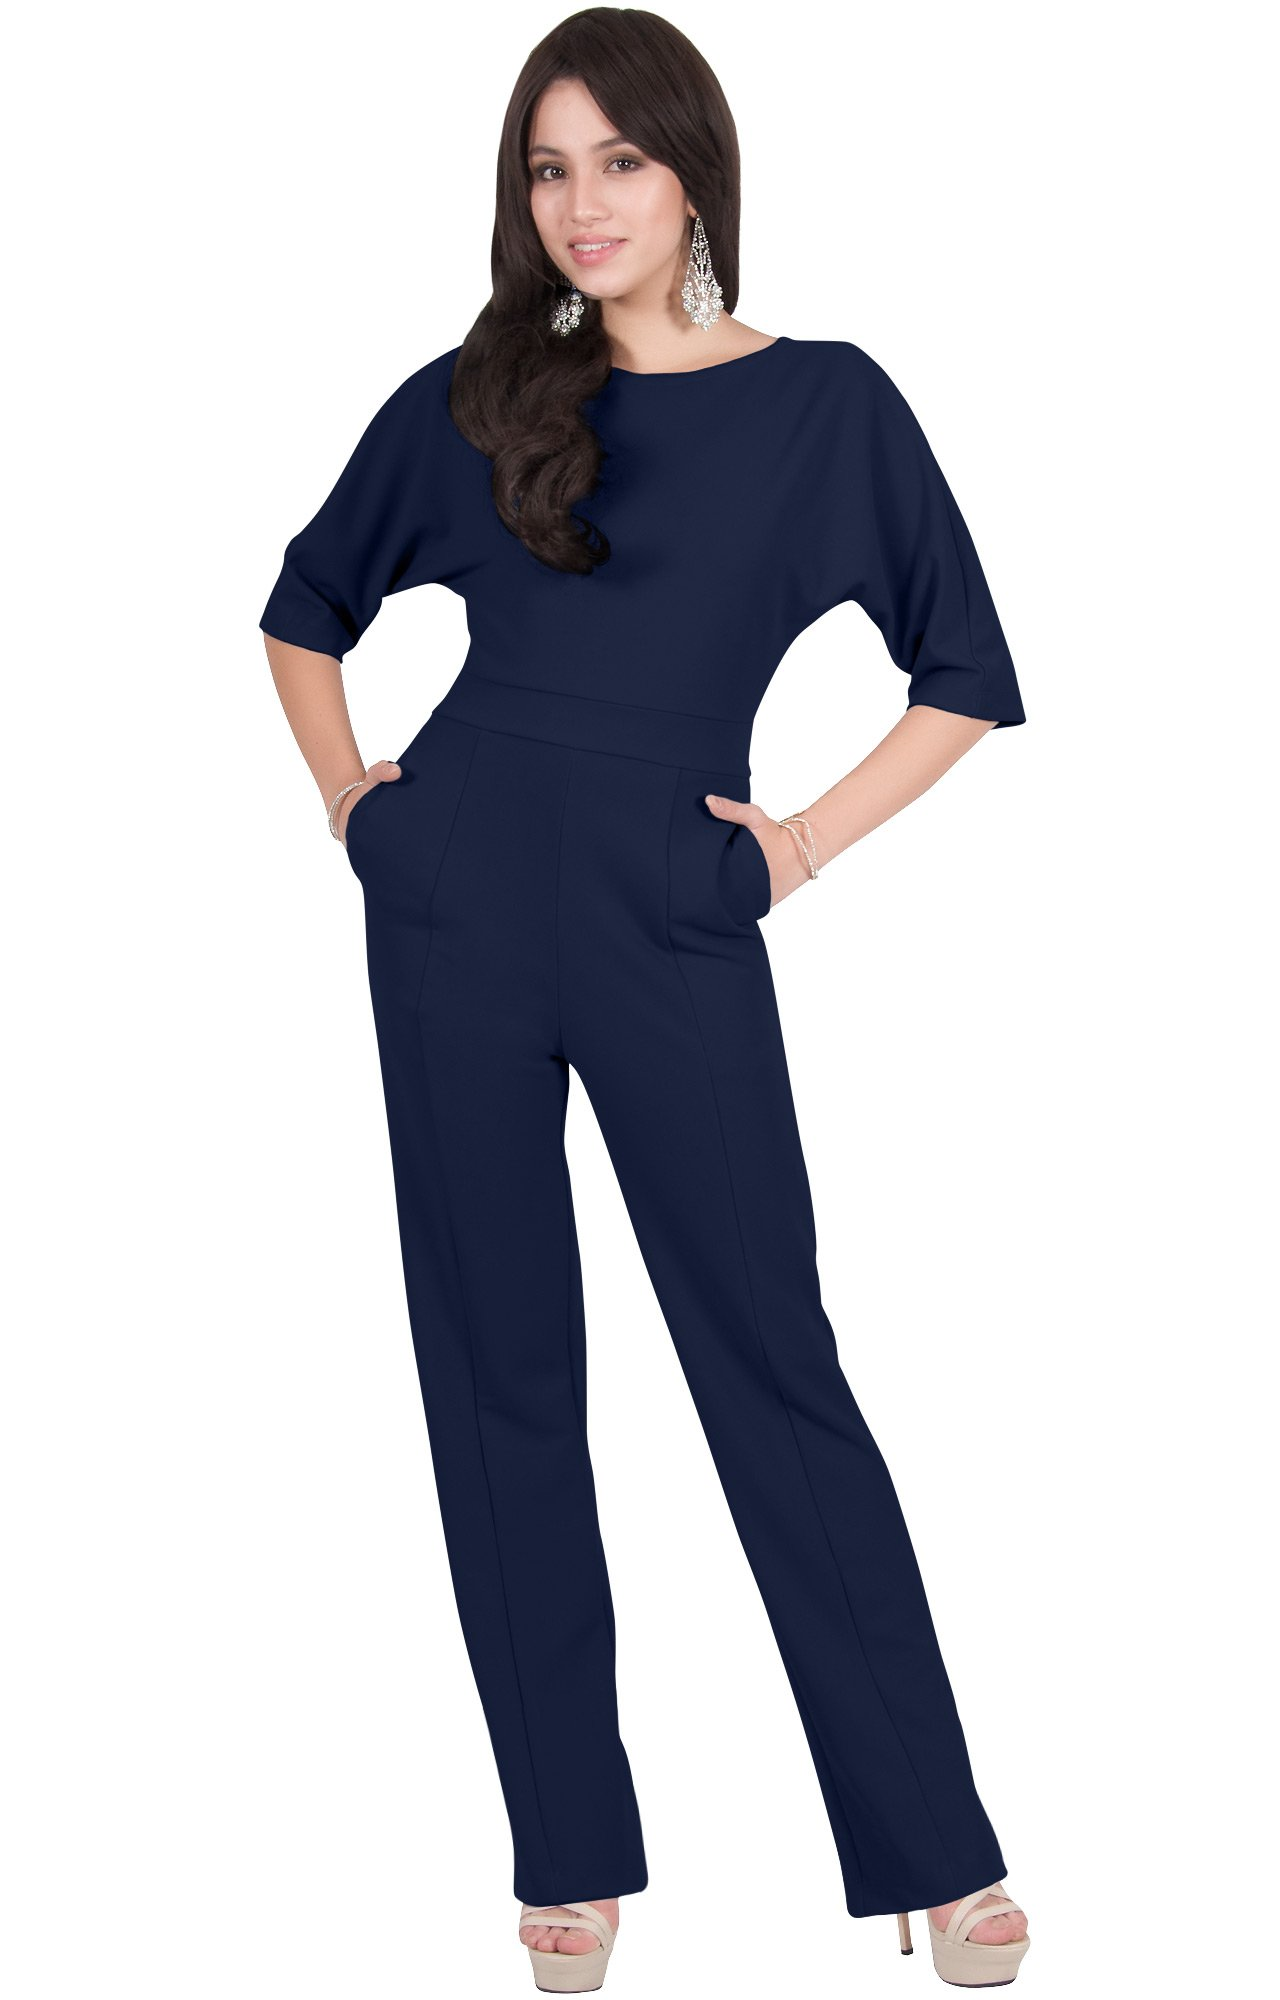 Viris Zamara Plus Size Womens Long Round Neck Batwing Short Sleeve Sexy Formal Cocktail Casual Long Pants One Piece Pockets Dressy Pant Suit Suits Outfit Playsuit Romper Jumpsuit, Navy Blue XL 14-16